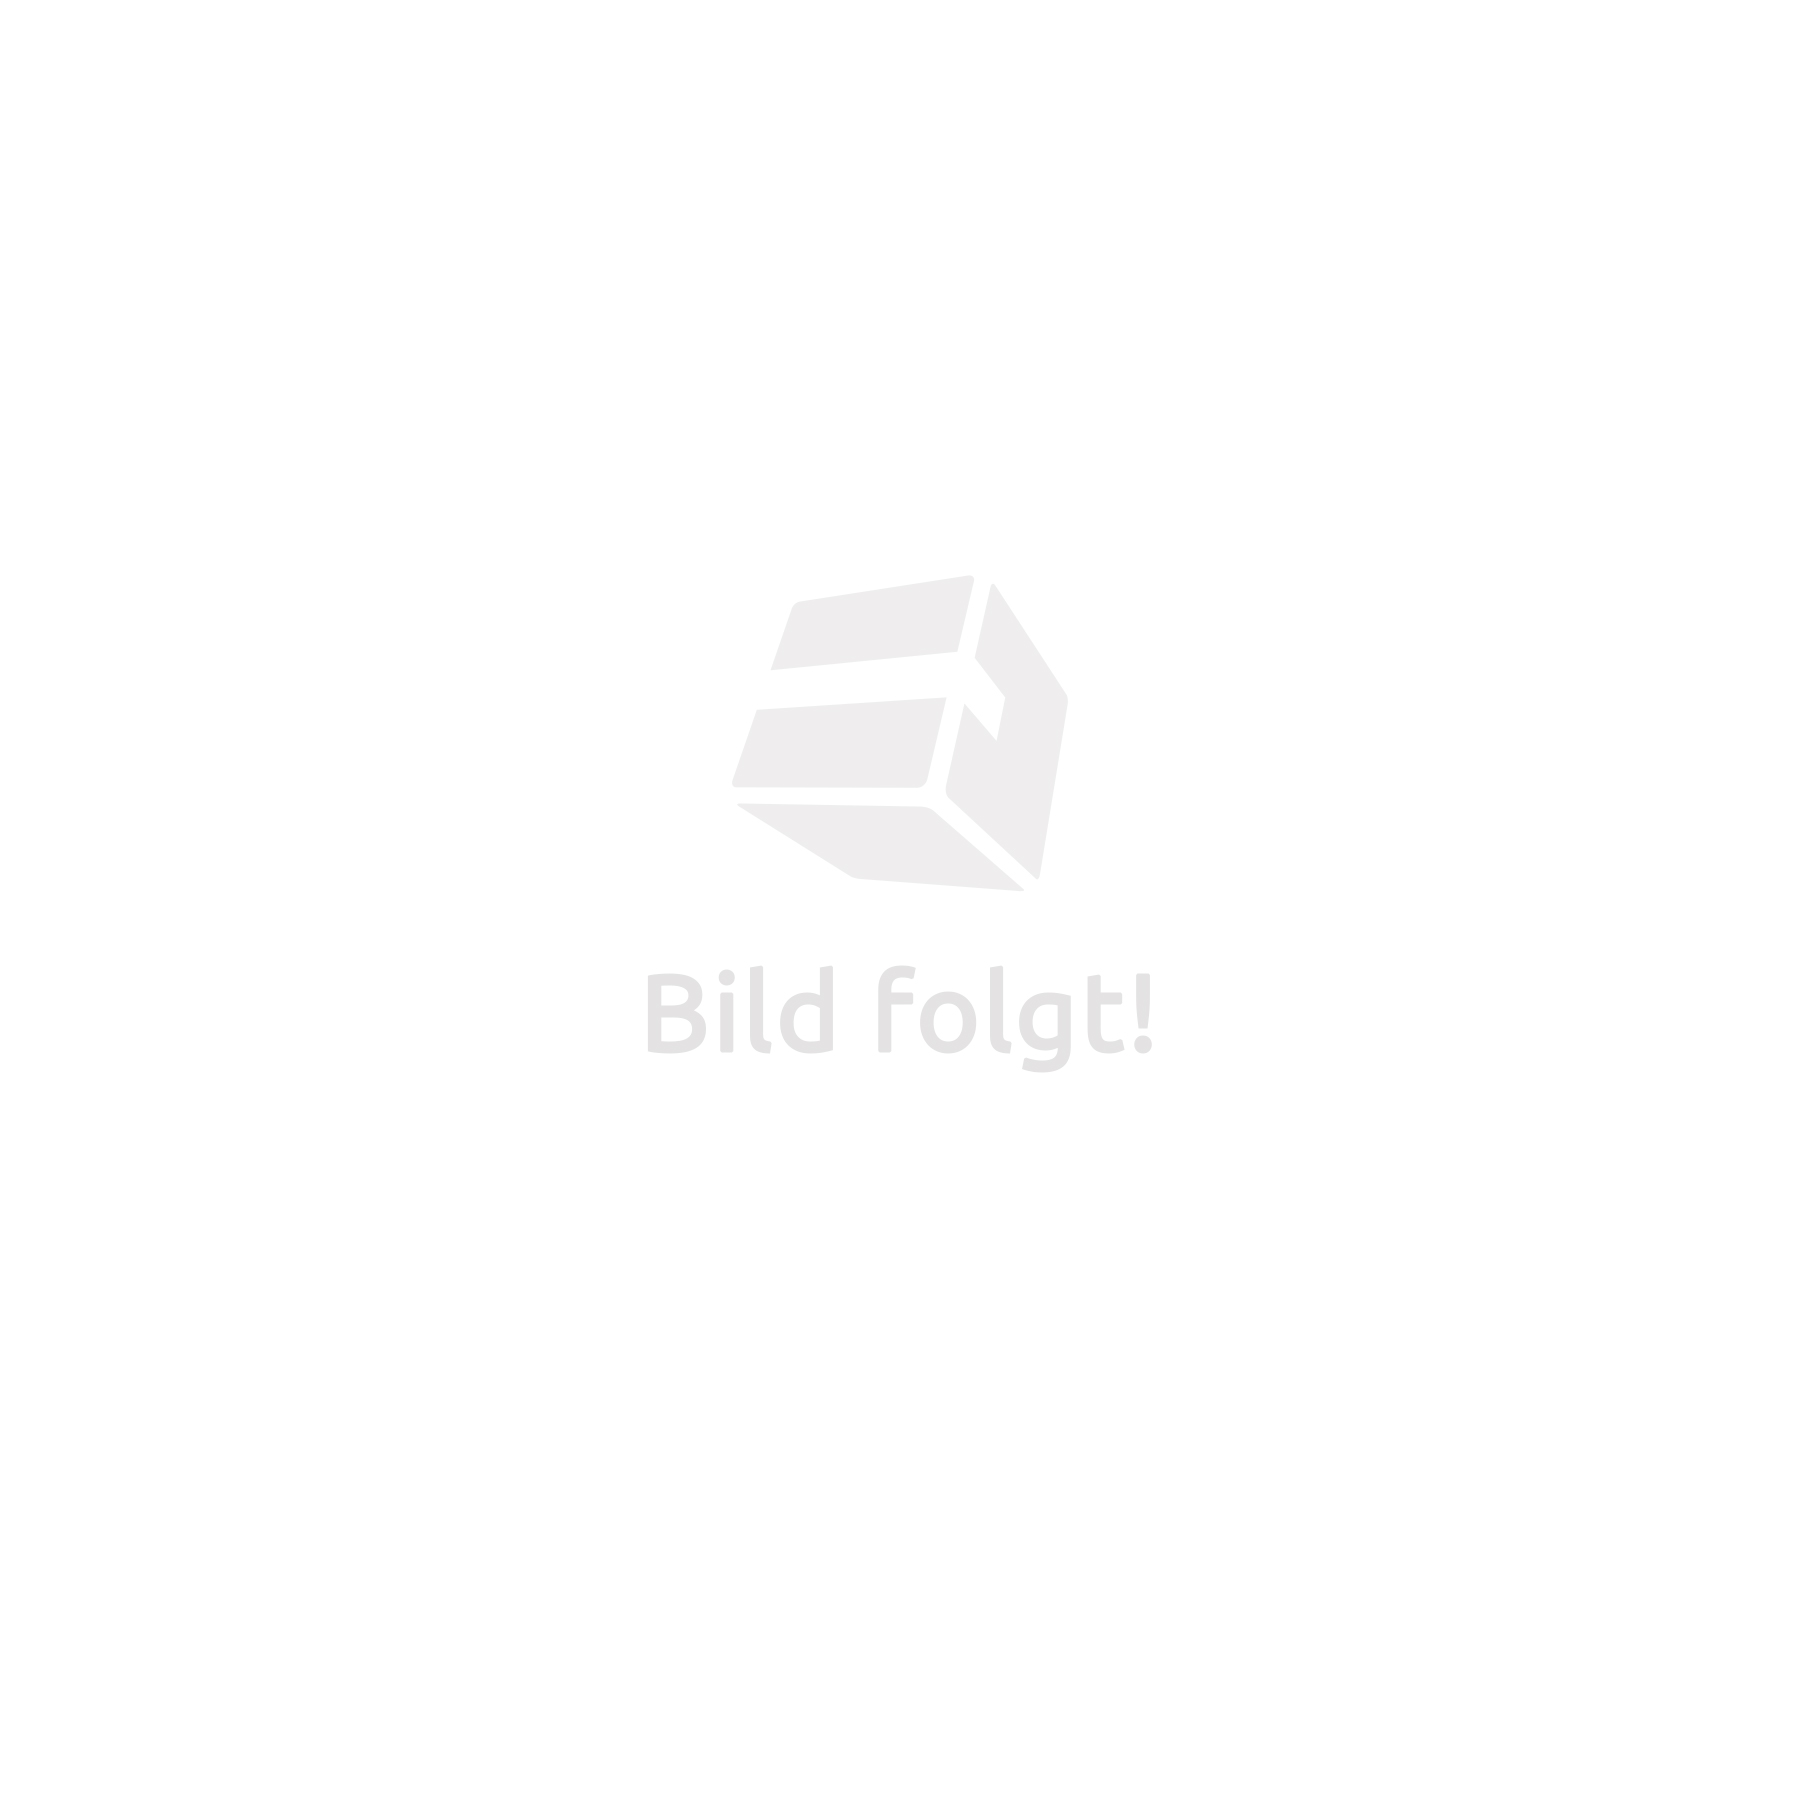 Table de lit pour ordinateur Portable + USB Ventilateur